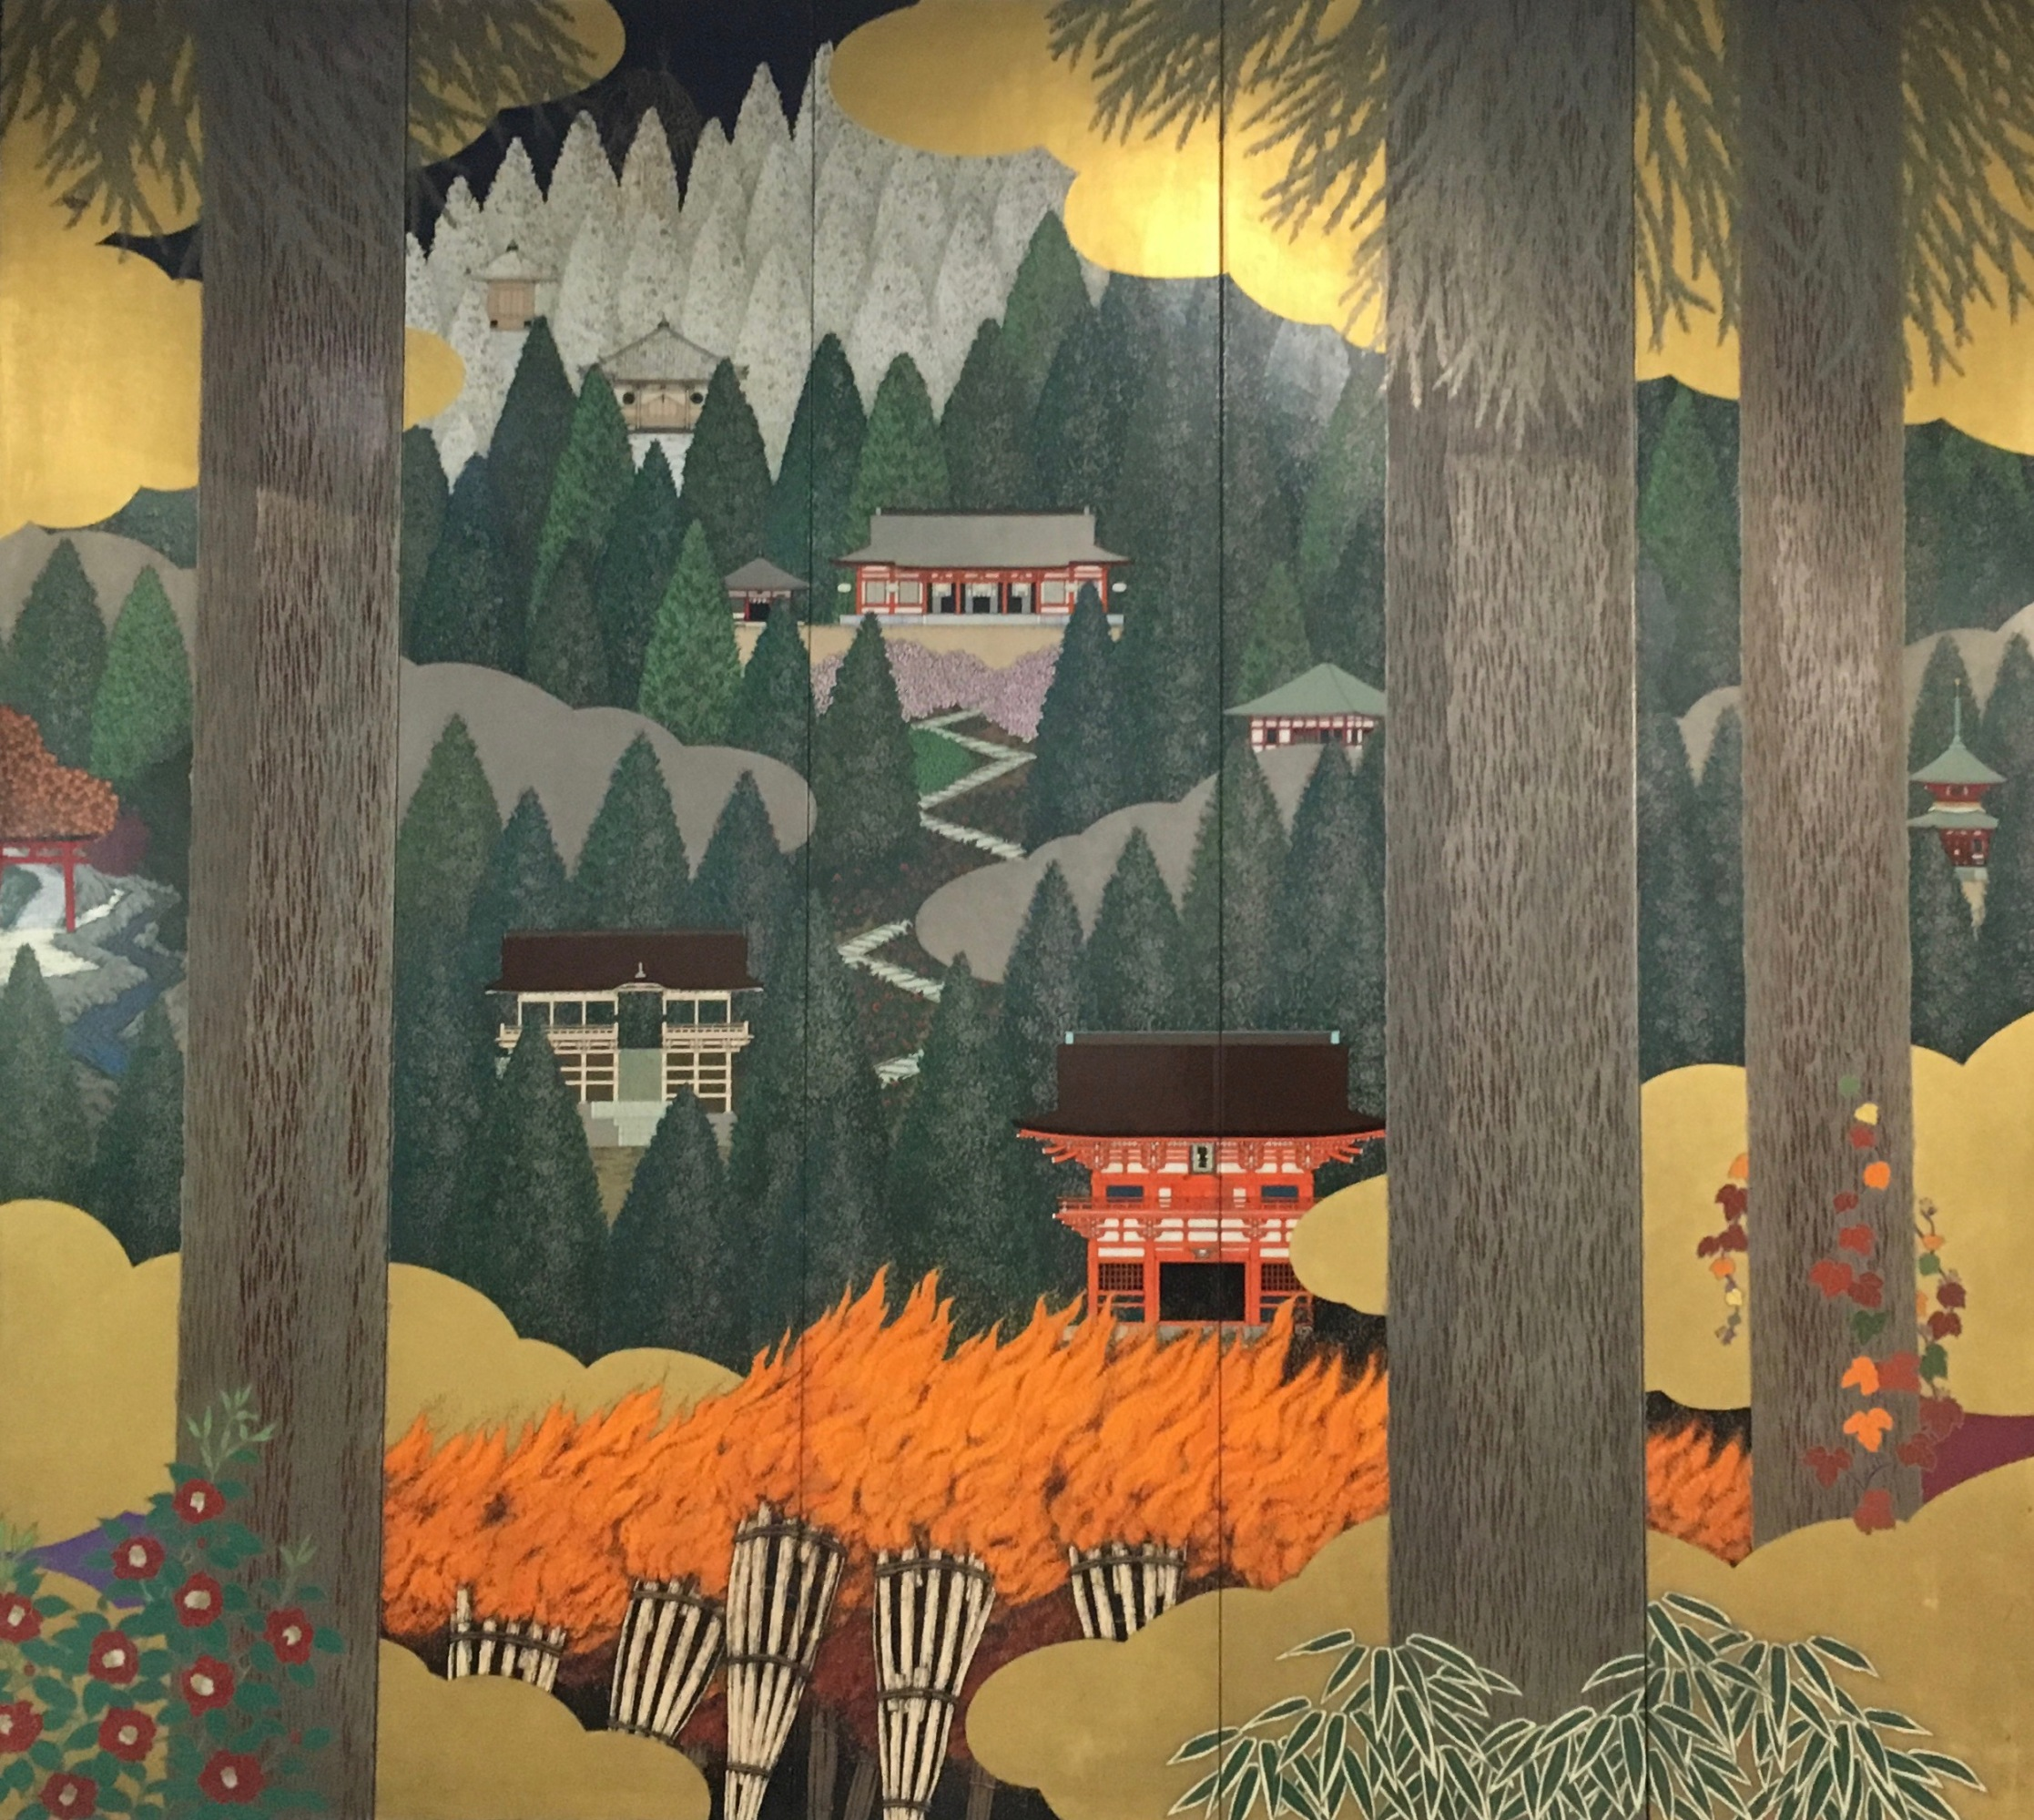 Another fire image that made me smile was this painting of the Fire Festival held on Mt Kurama on October 21st. The image is at Demia Station where you catch the train to the festival.